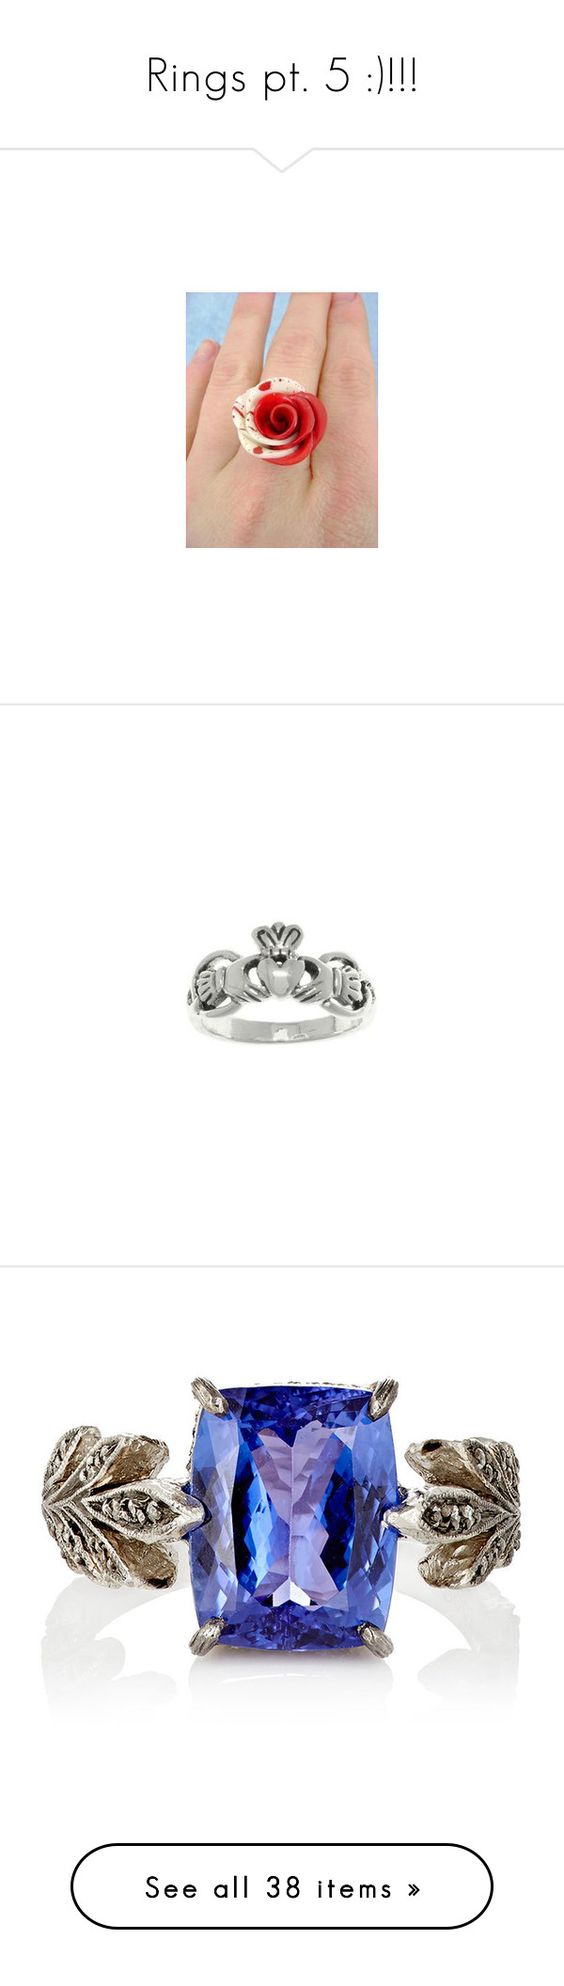 """Rings pt. 5 :)!!!"" by nerdbucket ❤ liked on Polyvore featuring jewelry, rings, red jewellery, crown jewelry, clay jewelry, white crown, handcrafted jewellery, colorless, band rings and tanzanite jewellery"